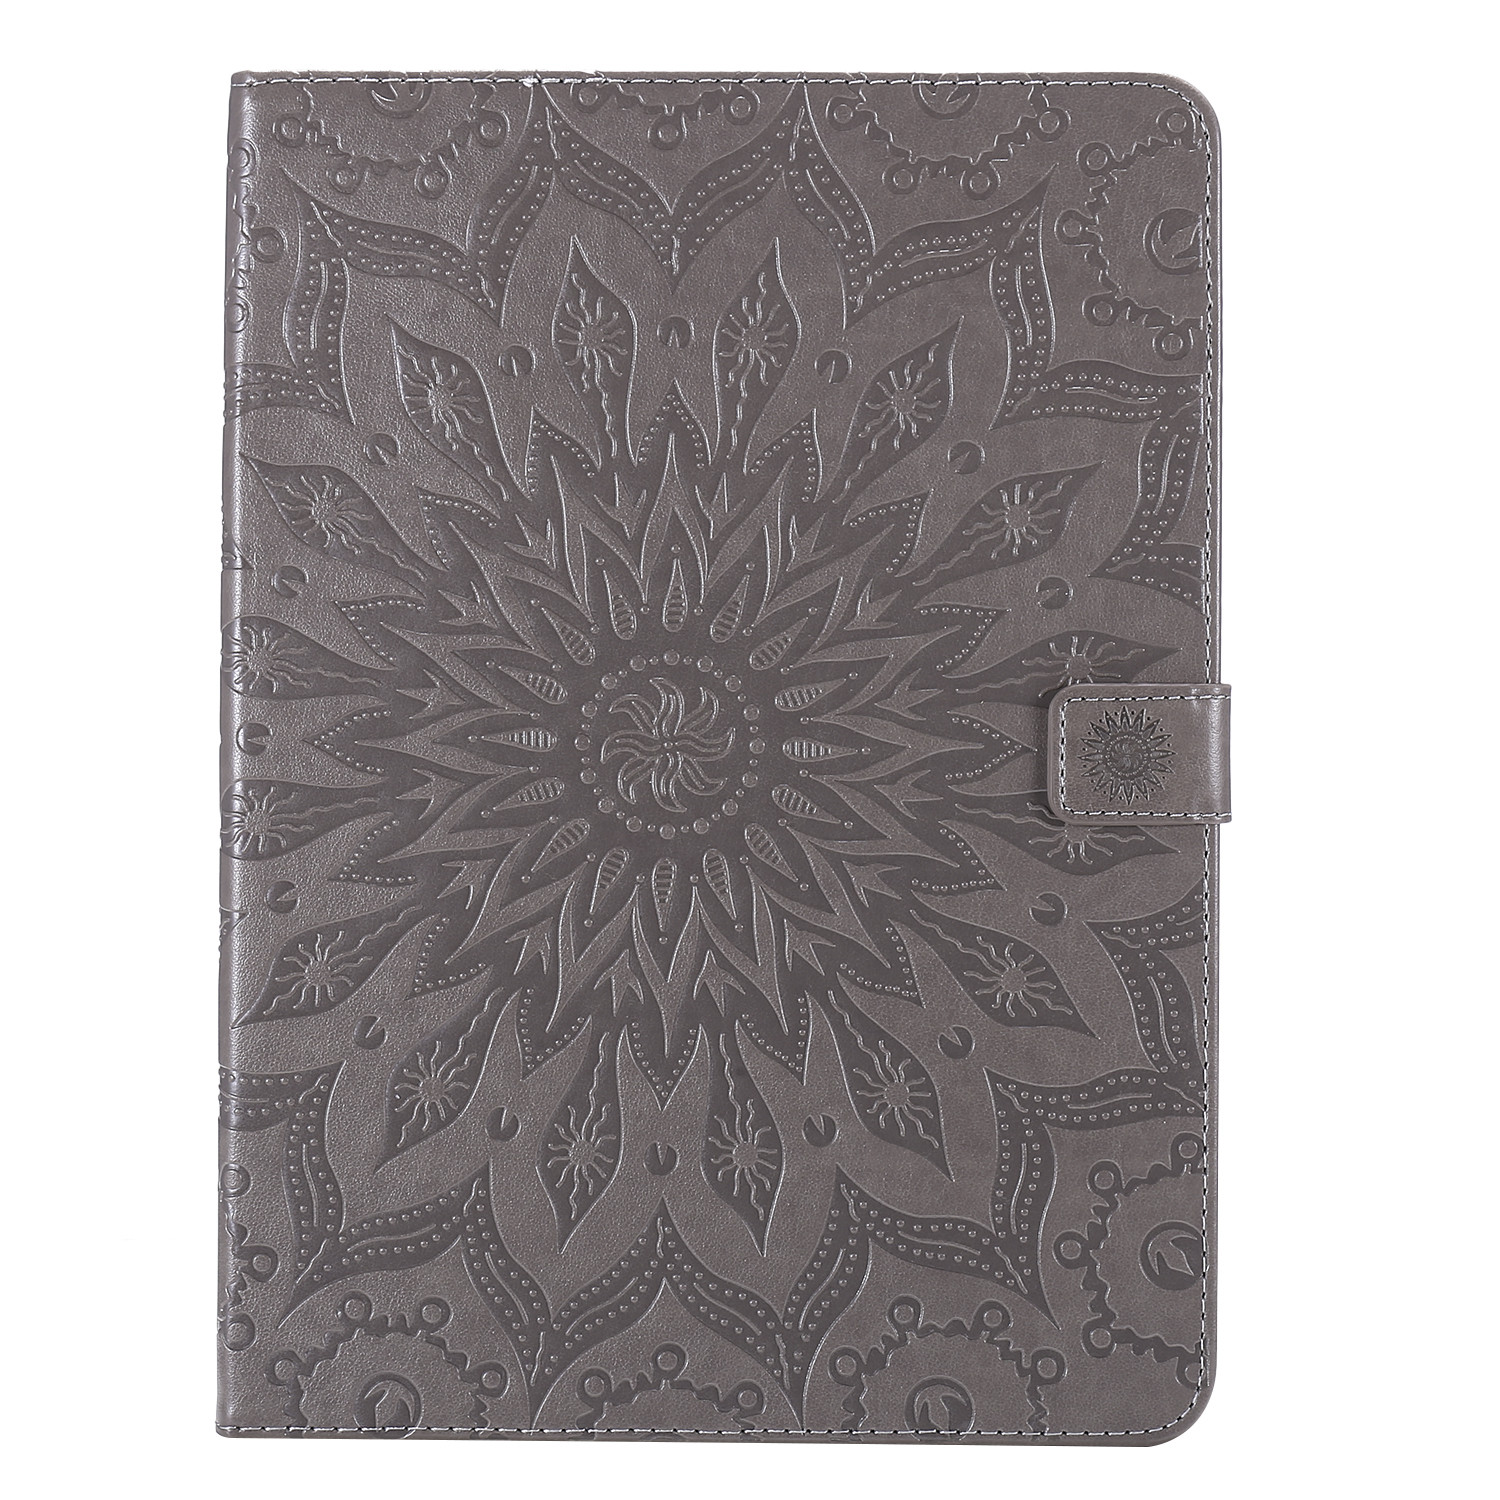 7 Gray Coque for iPad Pro 12 9 Case 2020 2018 Flip Leather Fashion Wallet Stand Cover for